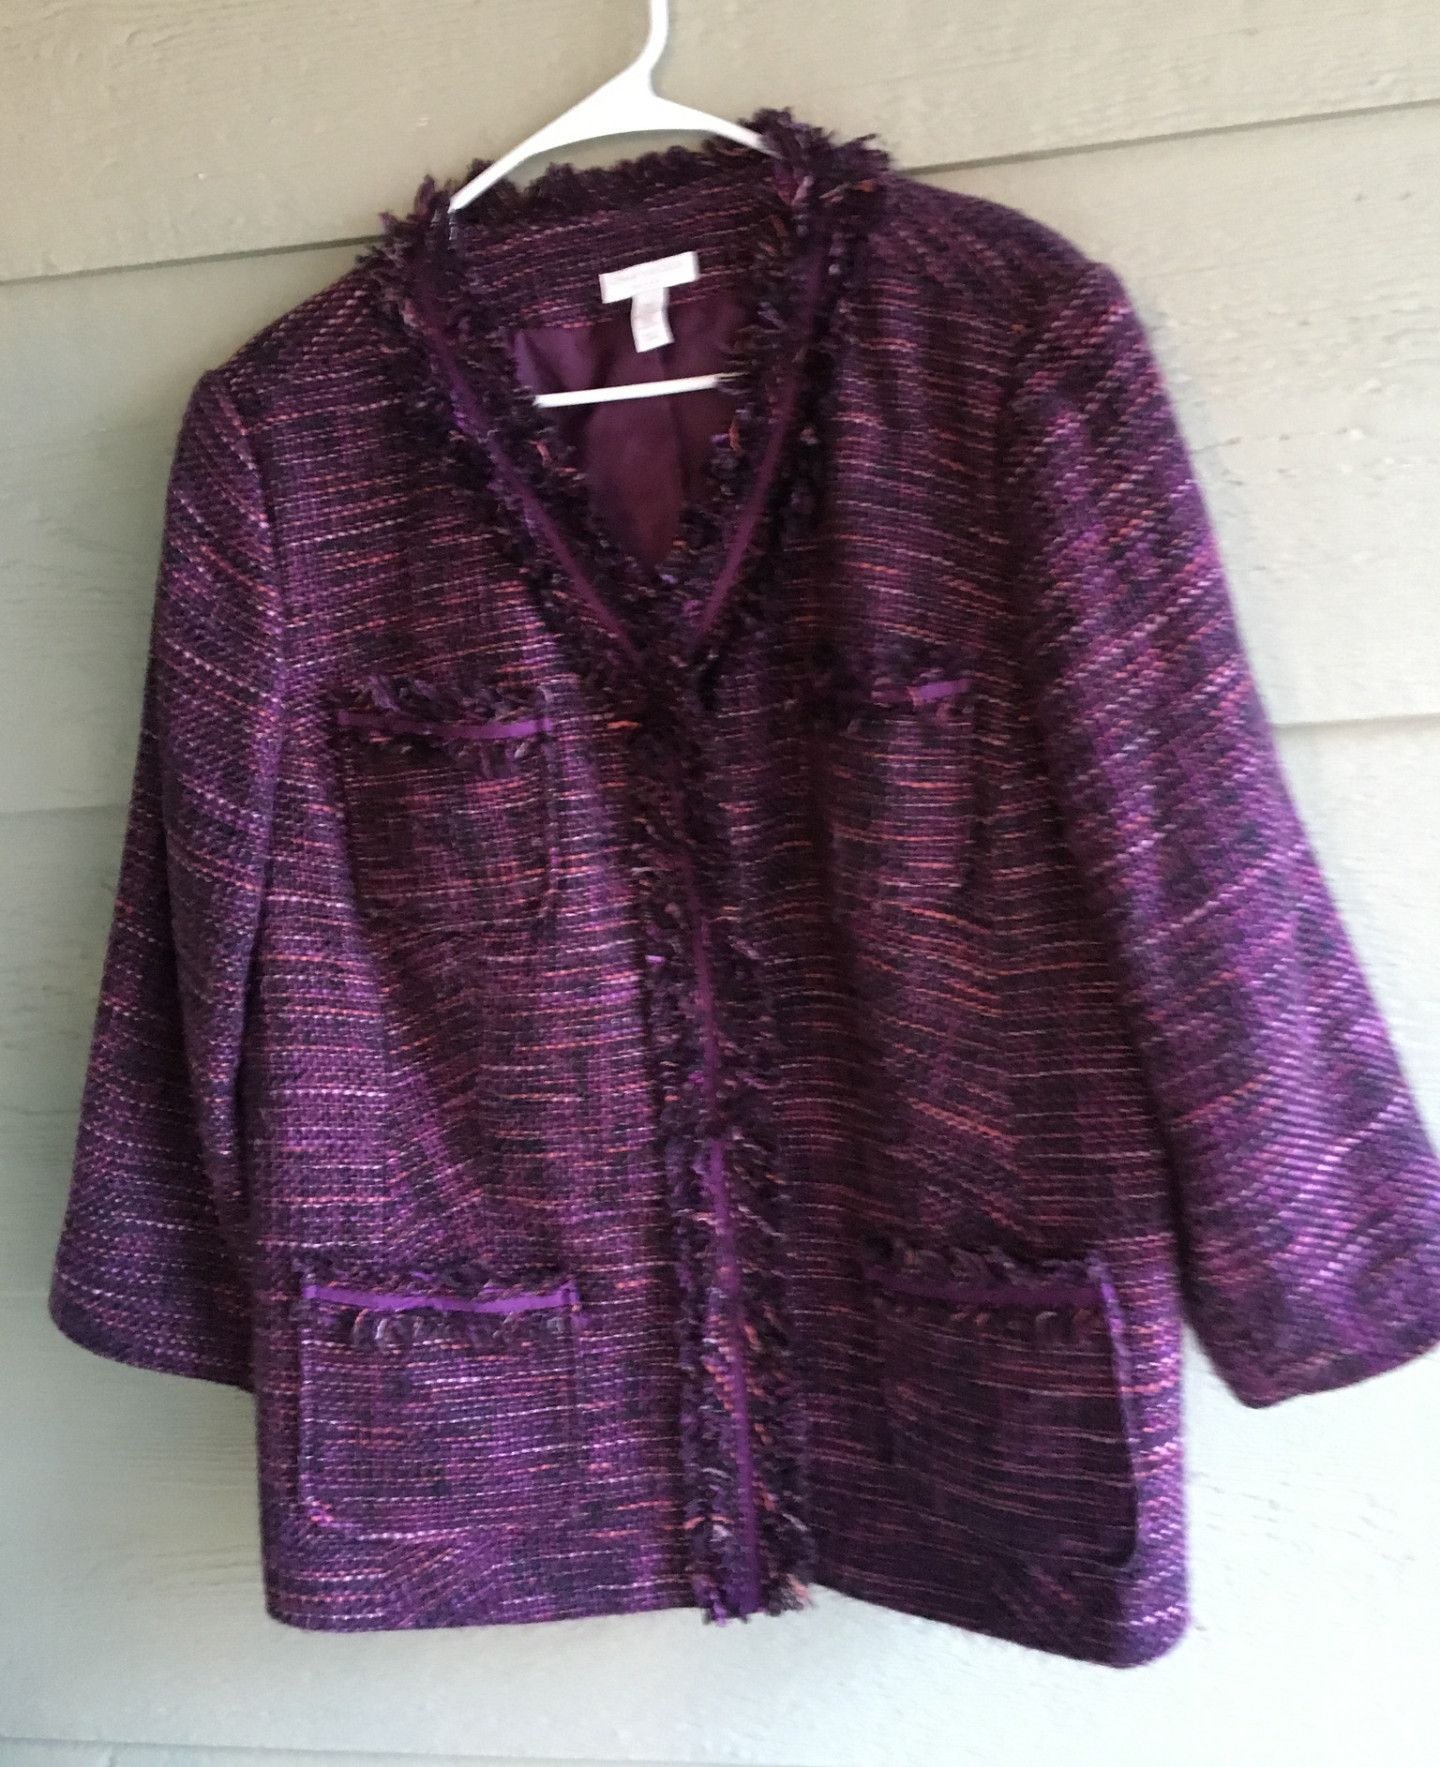 2X Purple Bloucle Jacket with Iconic Fringe CHARTER CLUB WOMAN